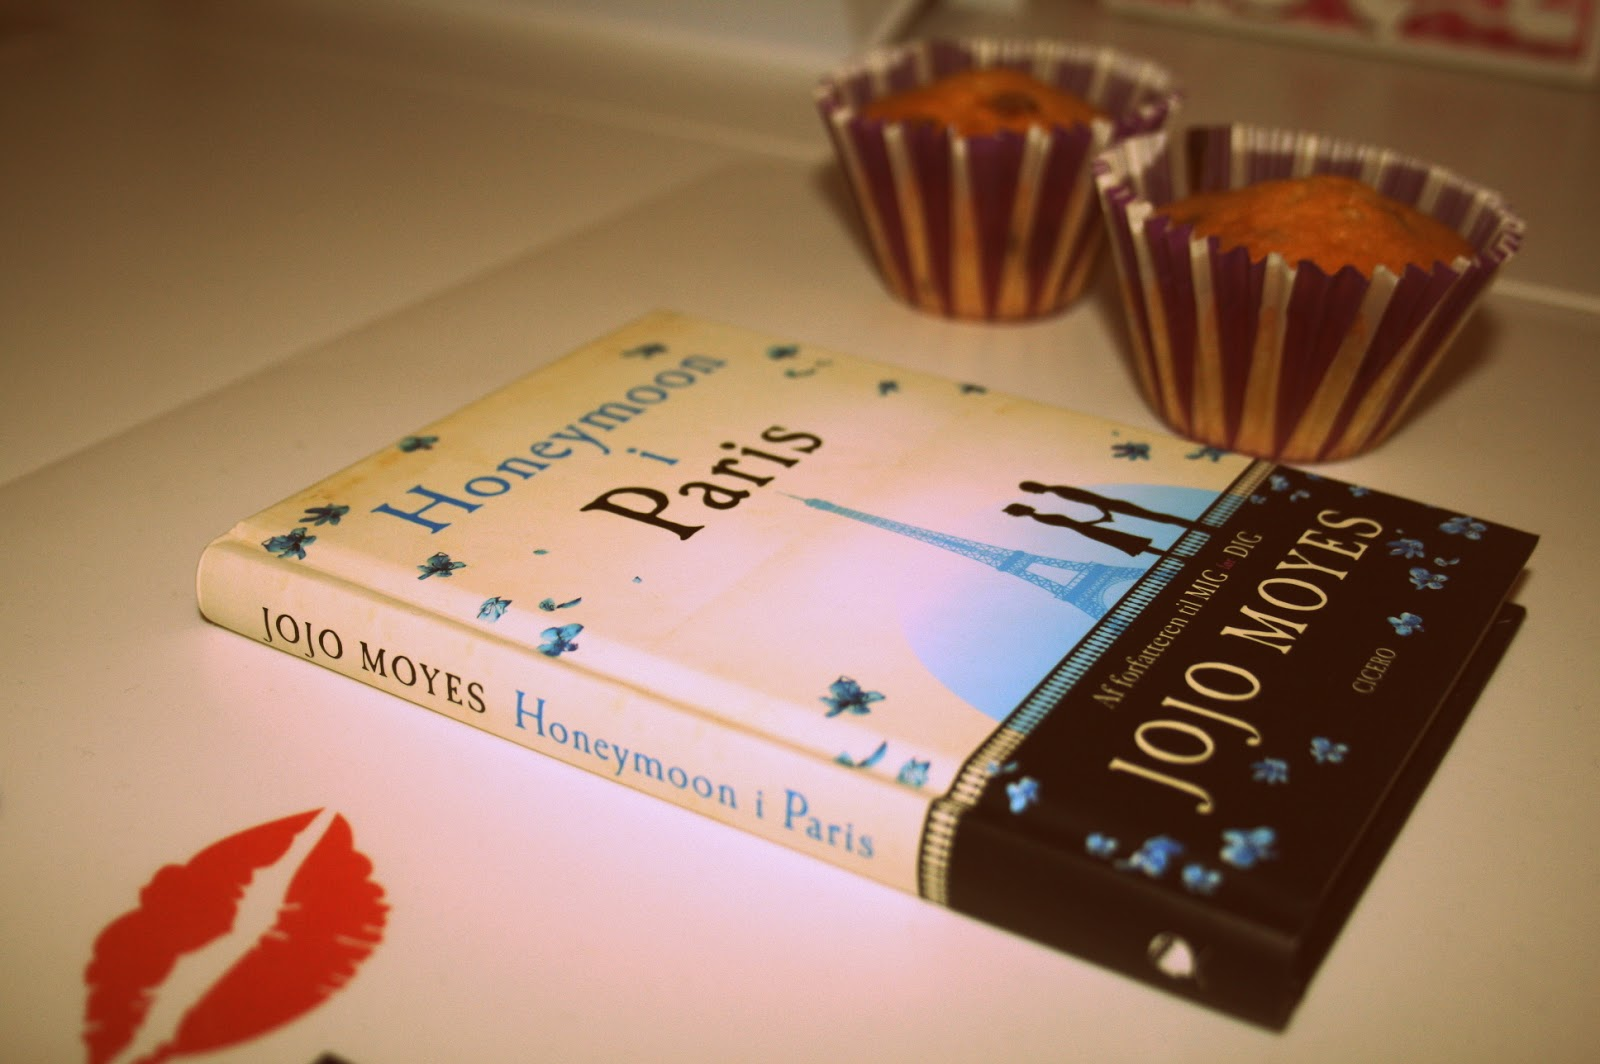 Honeymoon i Paris af Jojo Moyes